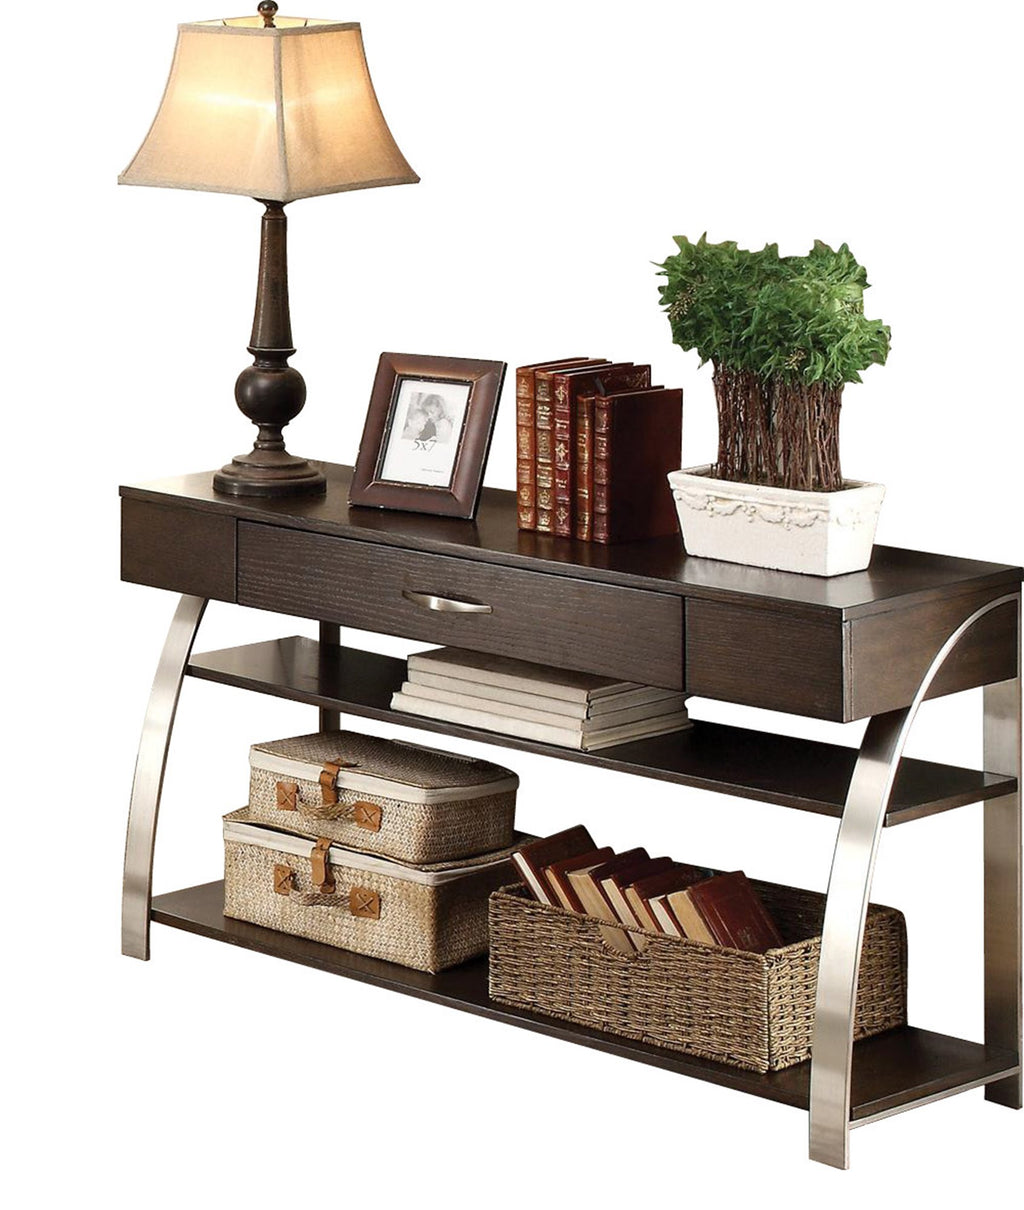 Homelegance Tioga Sofa Table with Functional Drawer in Espresso